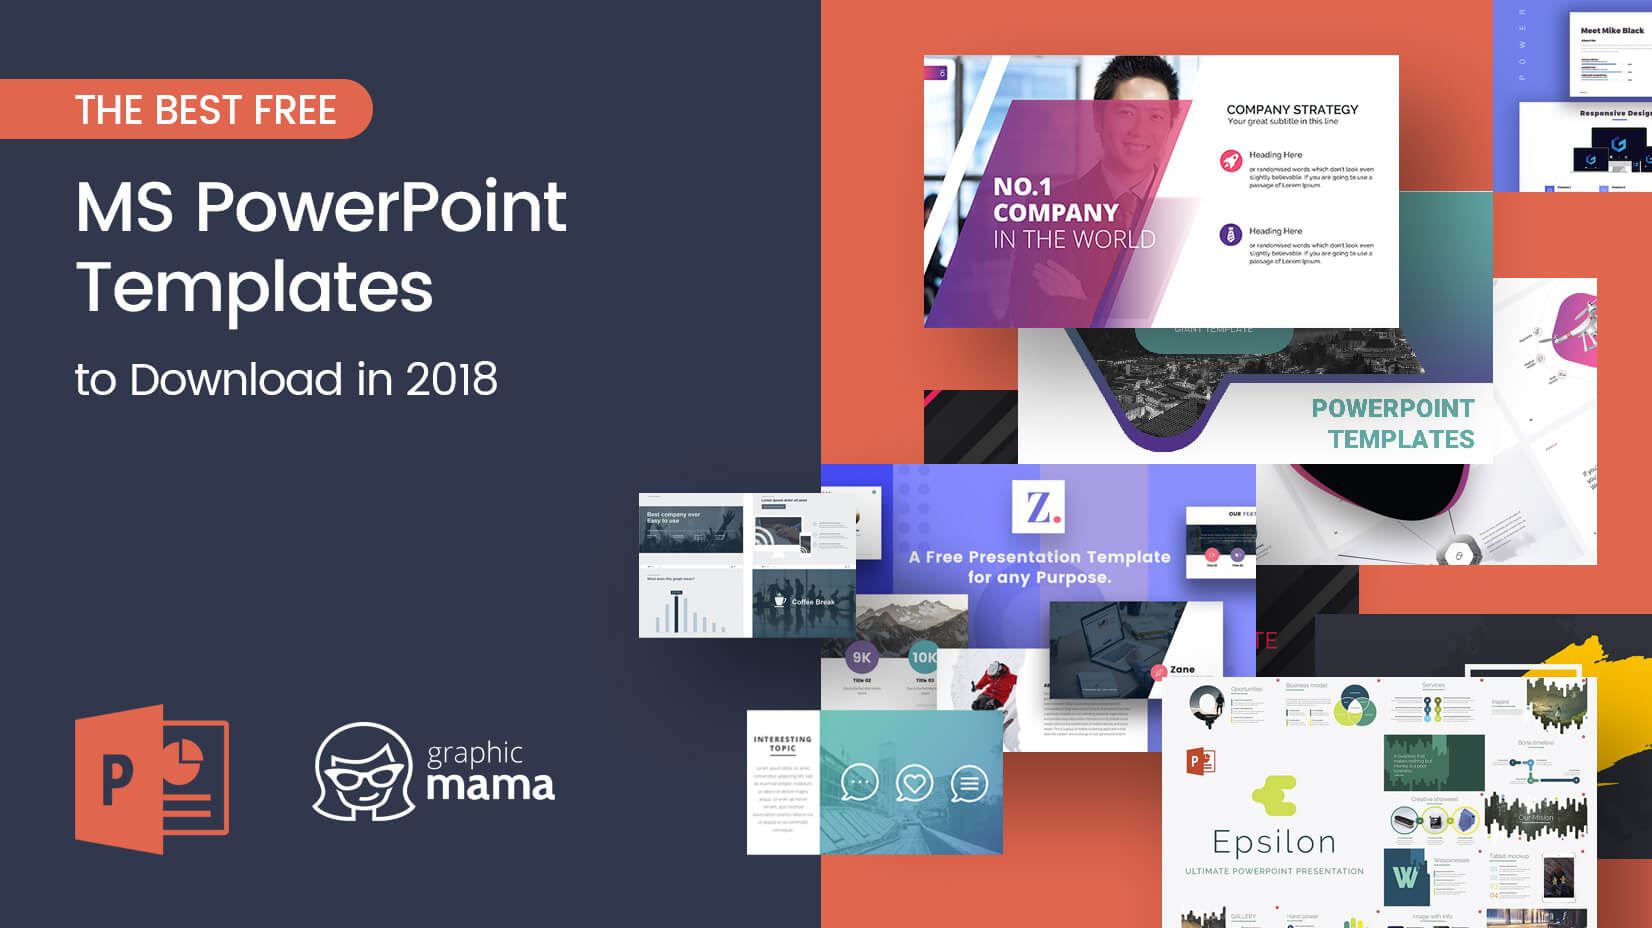 the best free powerpoint templates to download in 2018 | graphicmama, Presentation Template Powerpoint Free Download, Presentation templates